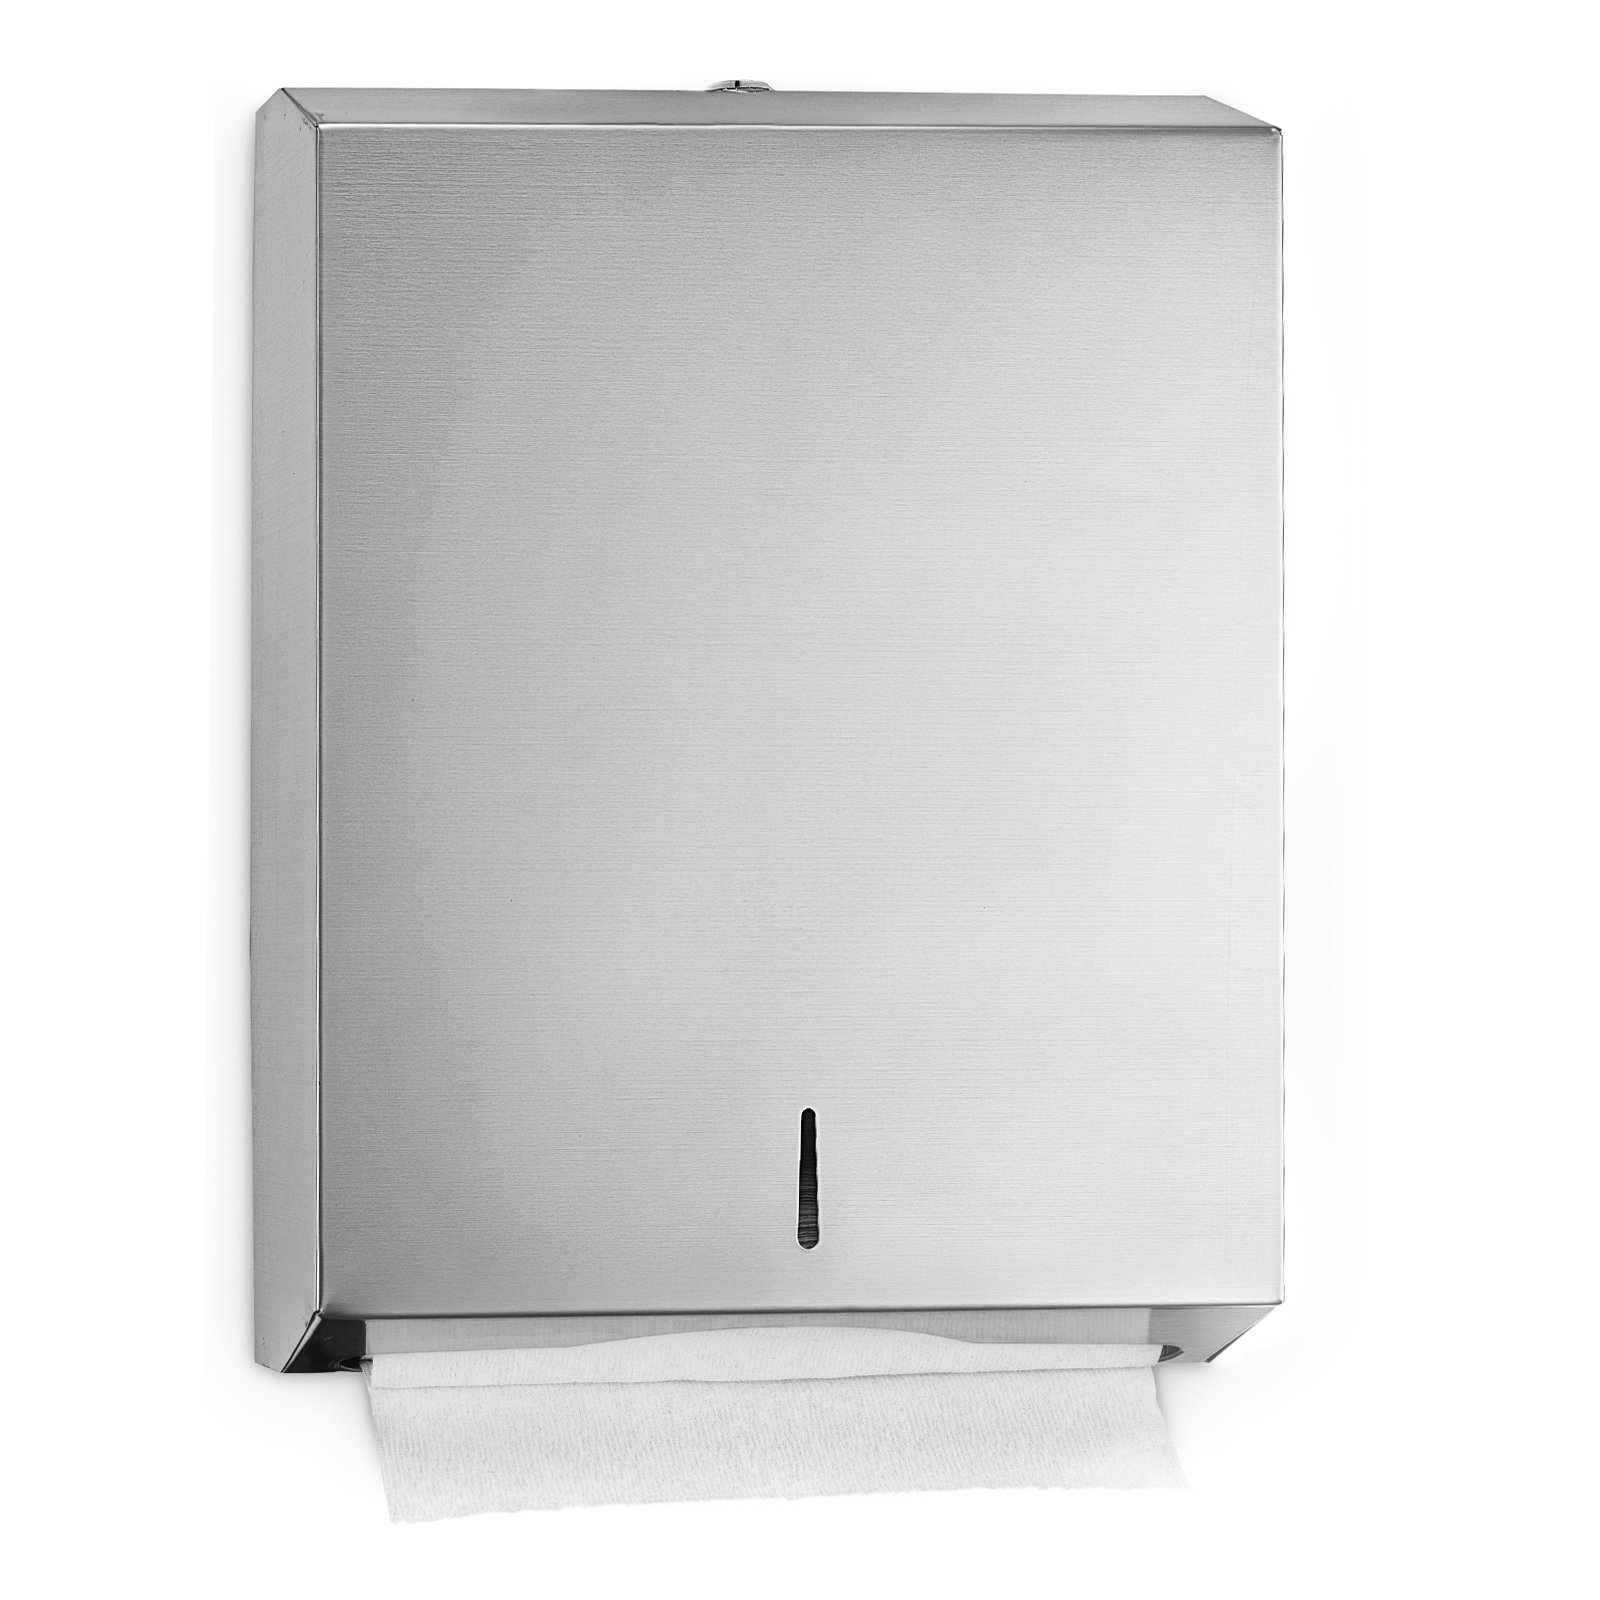 Alpine industries C-Fold/Multifold Paper Towel Dispenser - Brushed Stainless Steel - Holds Up to 400 C-Fold Or 525 Multifold Towels by Alpine Industries